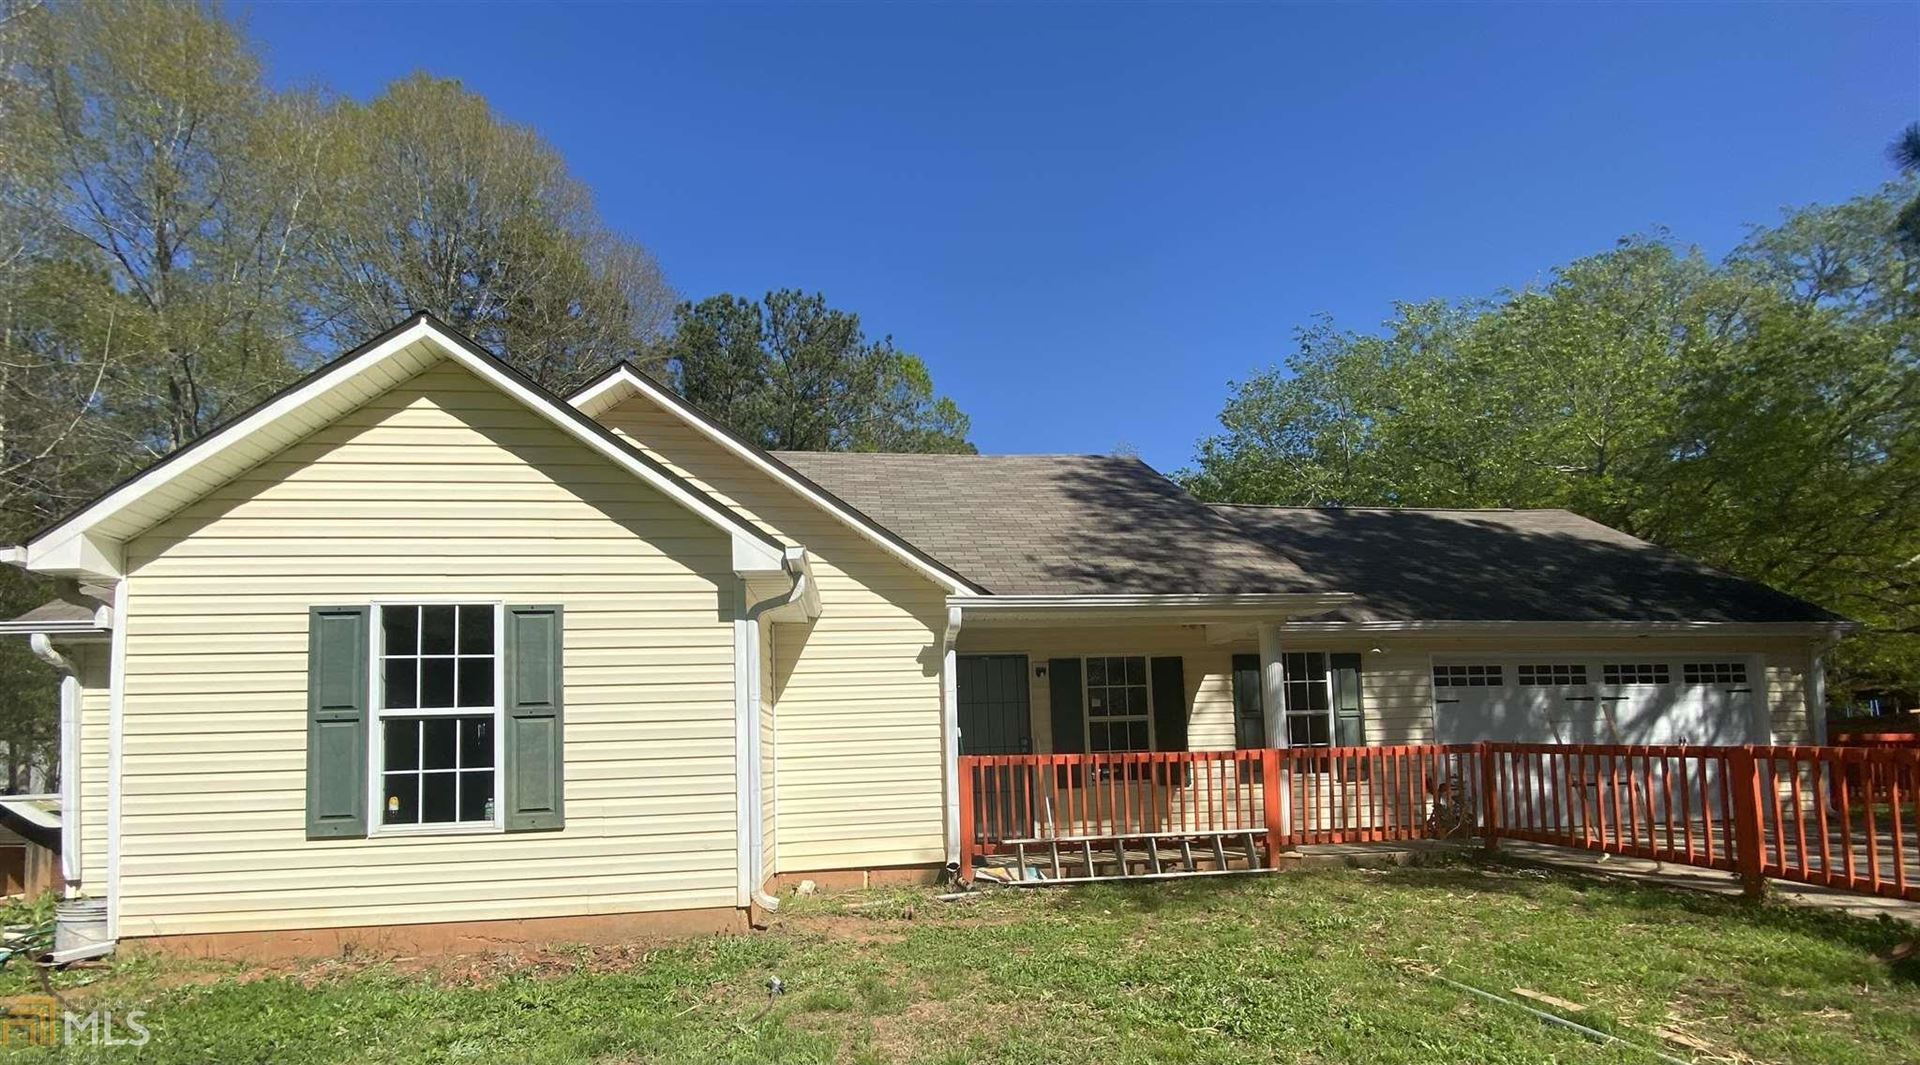 1720 Pineview Rd, Griffin, GA 30223 - #: 8954193